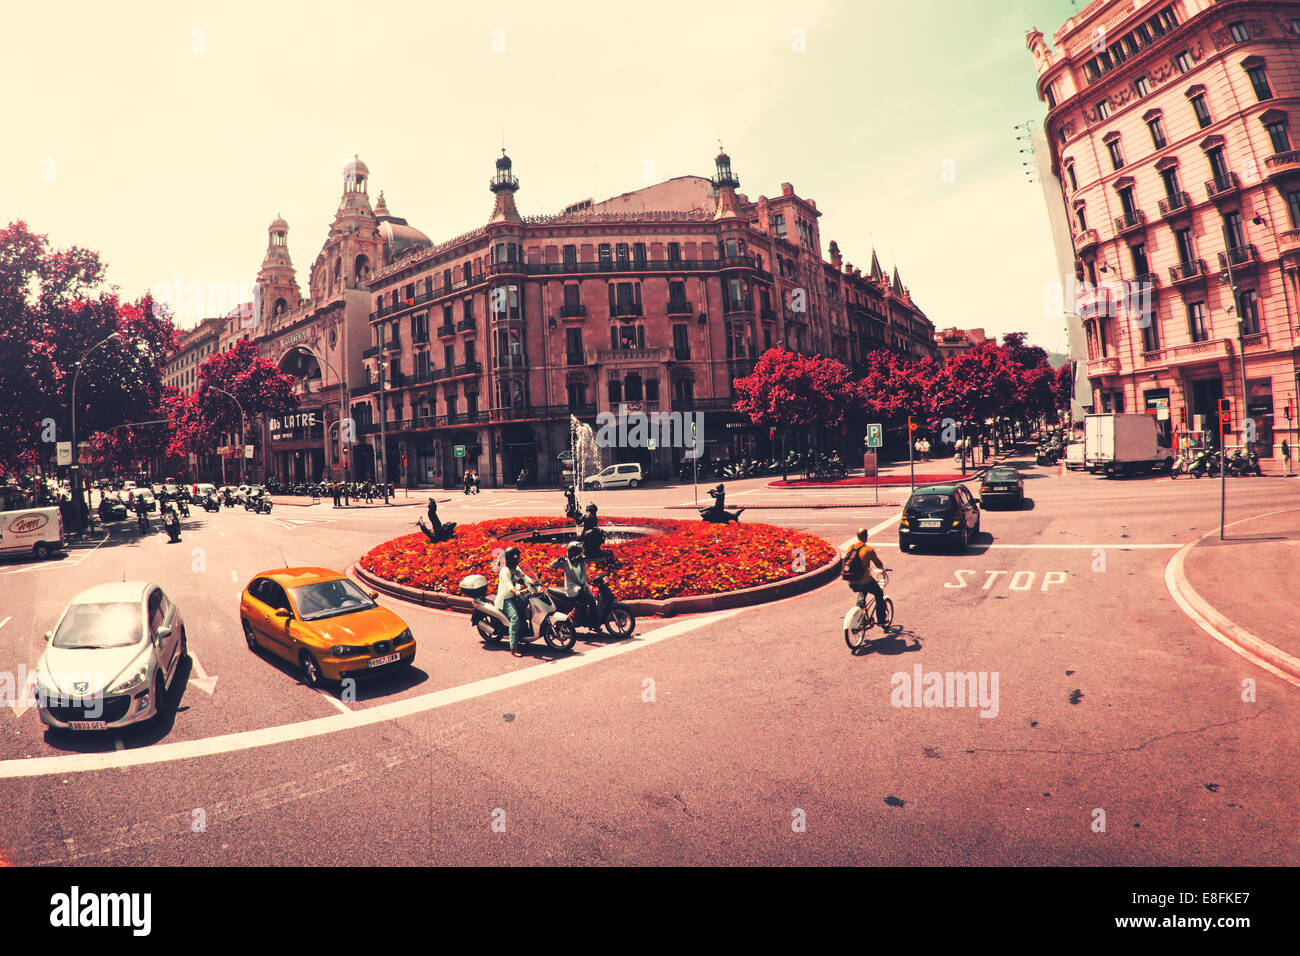 Spain, Barcelona, Street scene - Stock Image